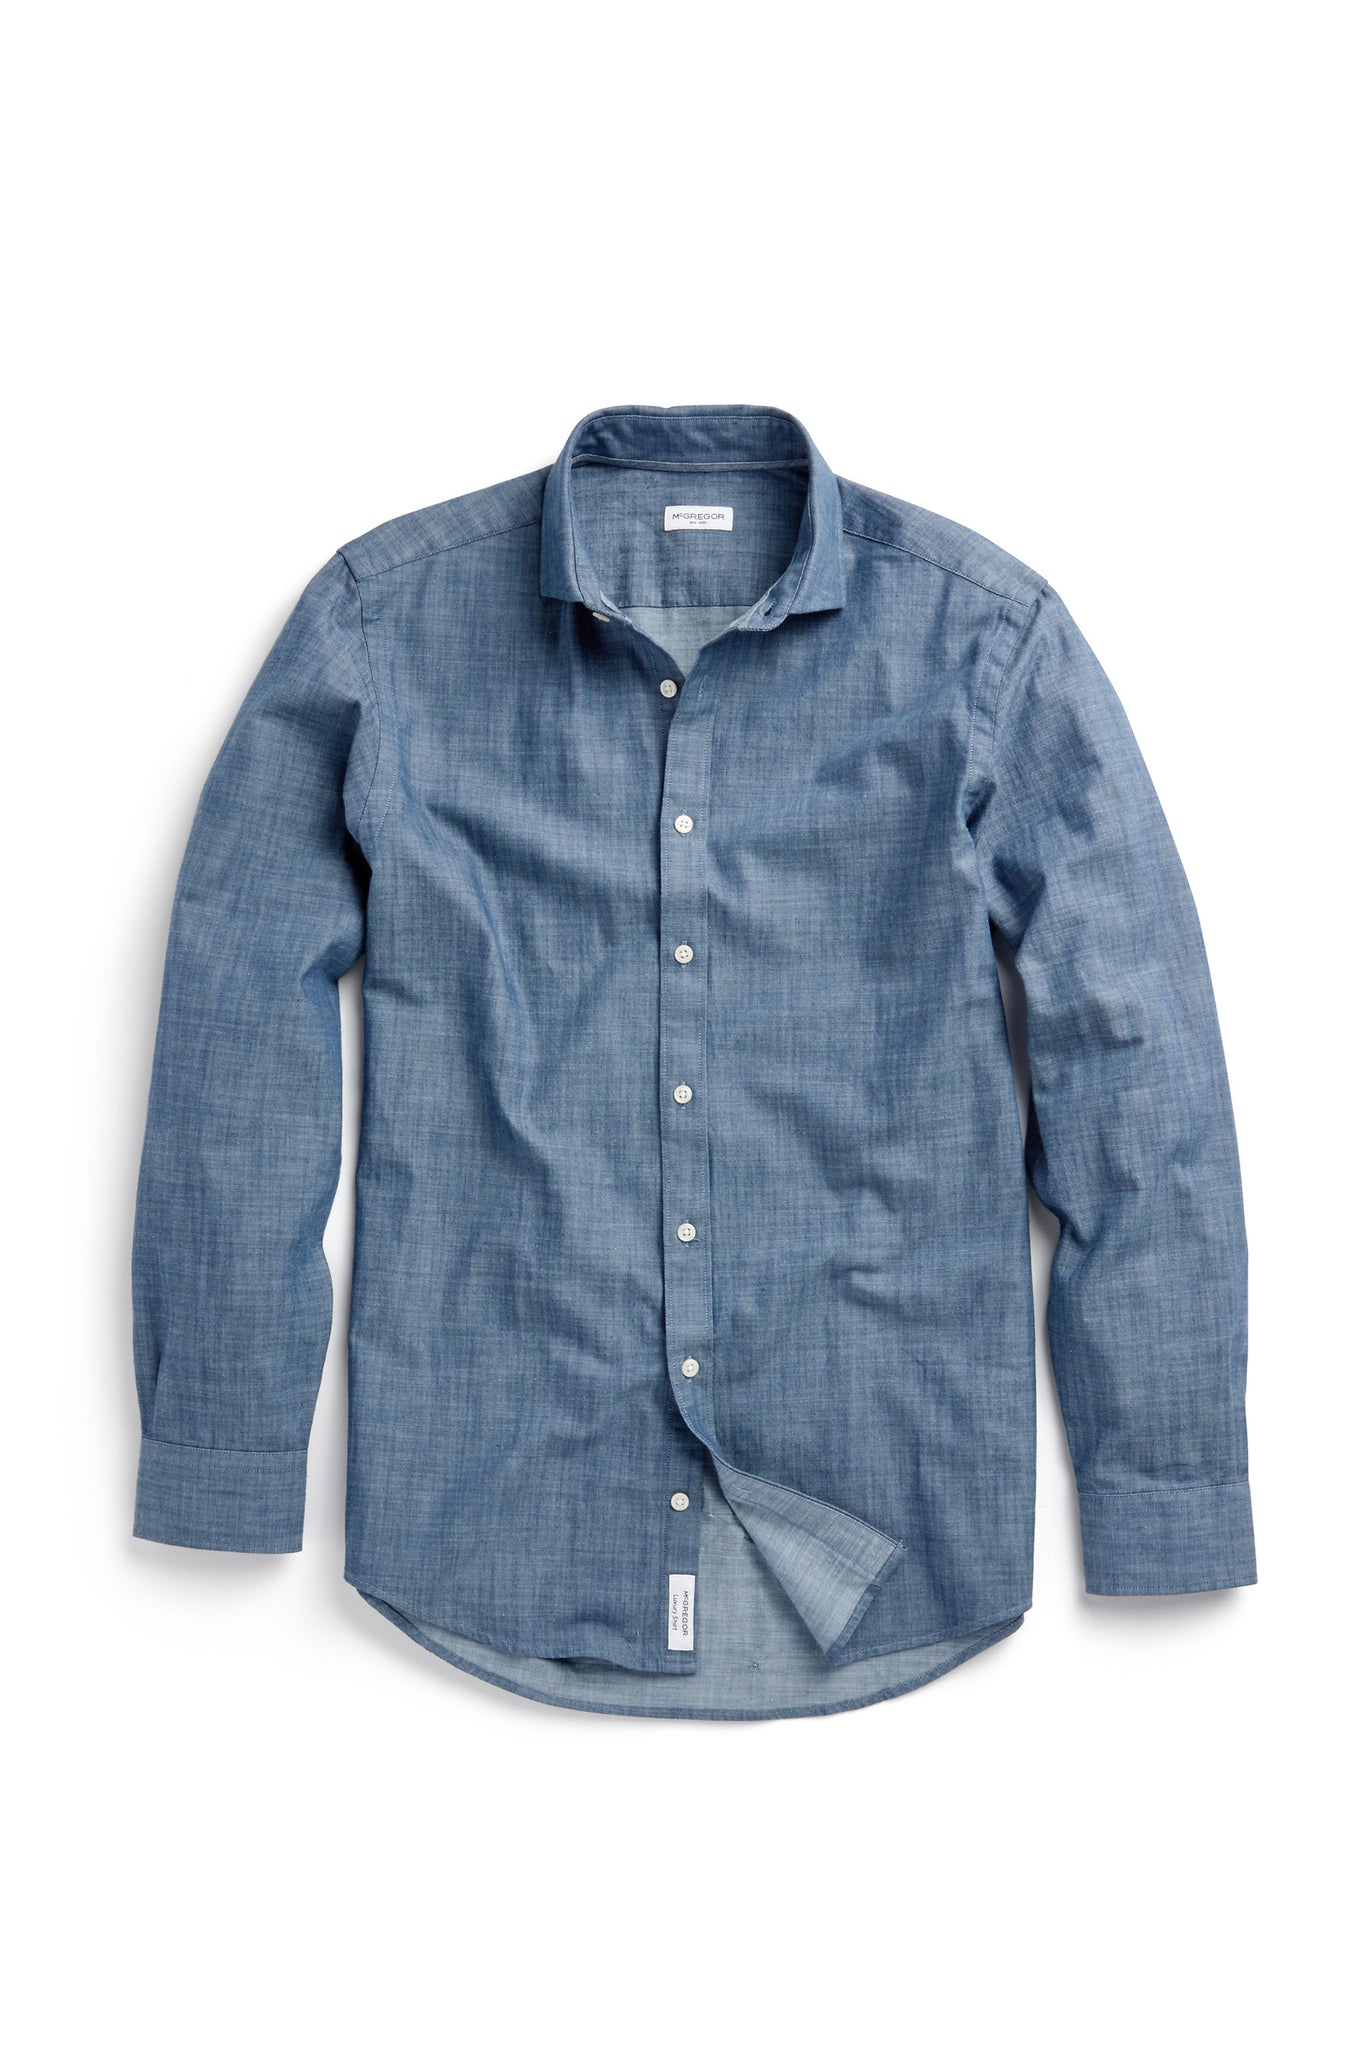 New York Denim Shirt Regular Fit